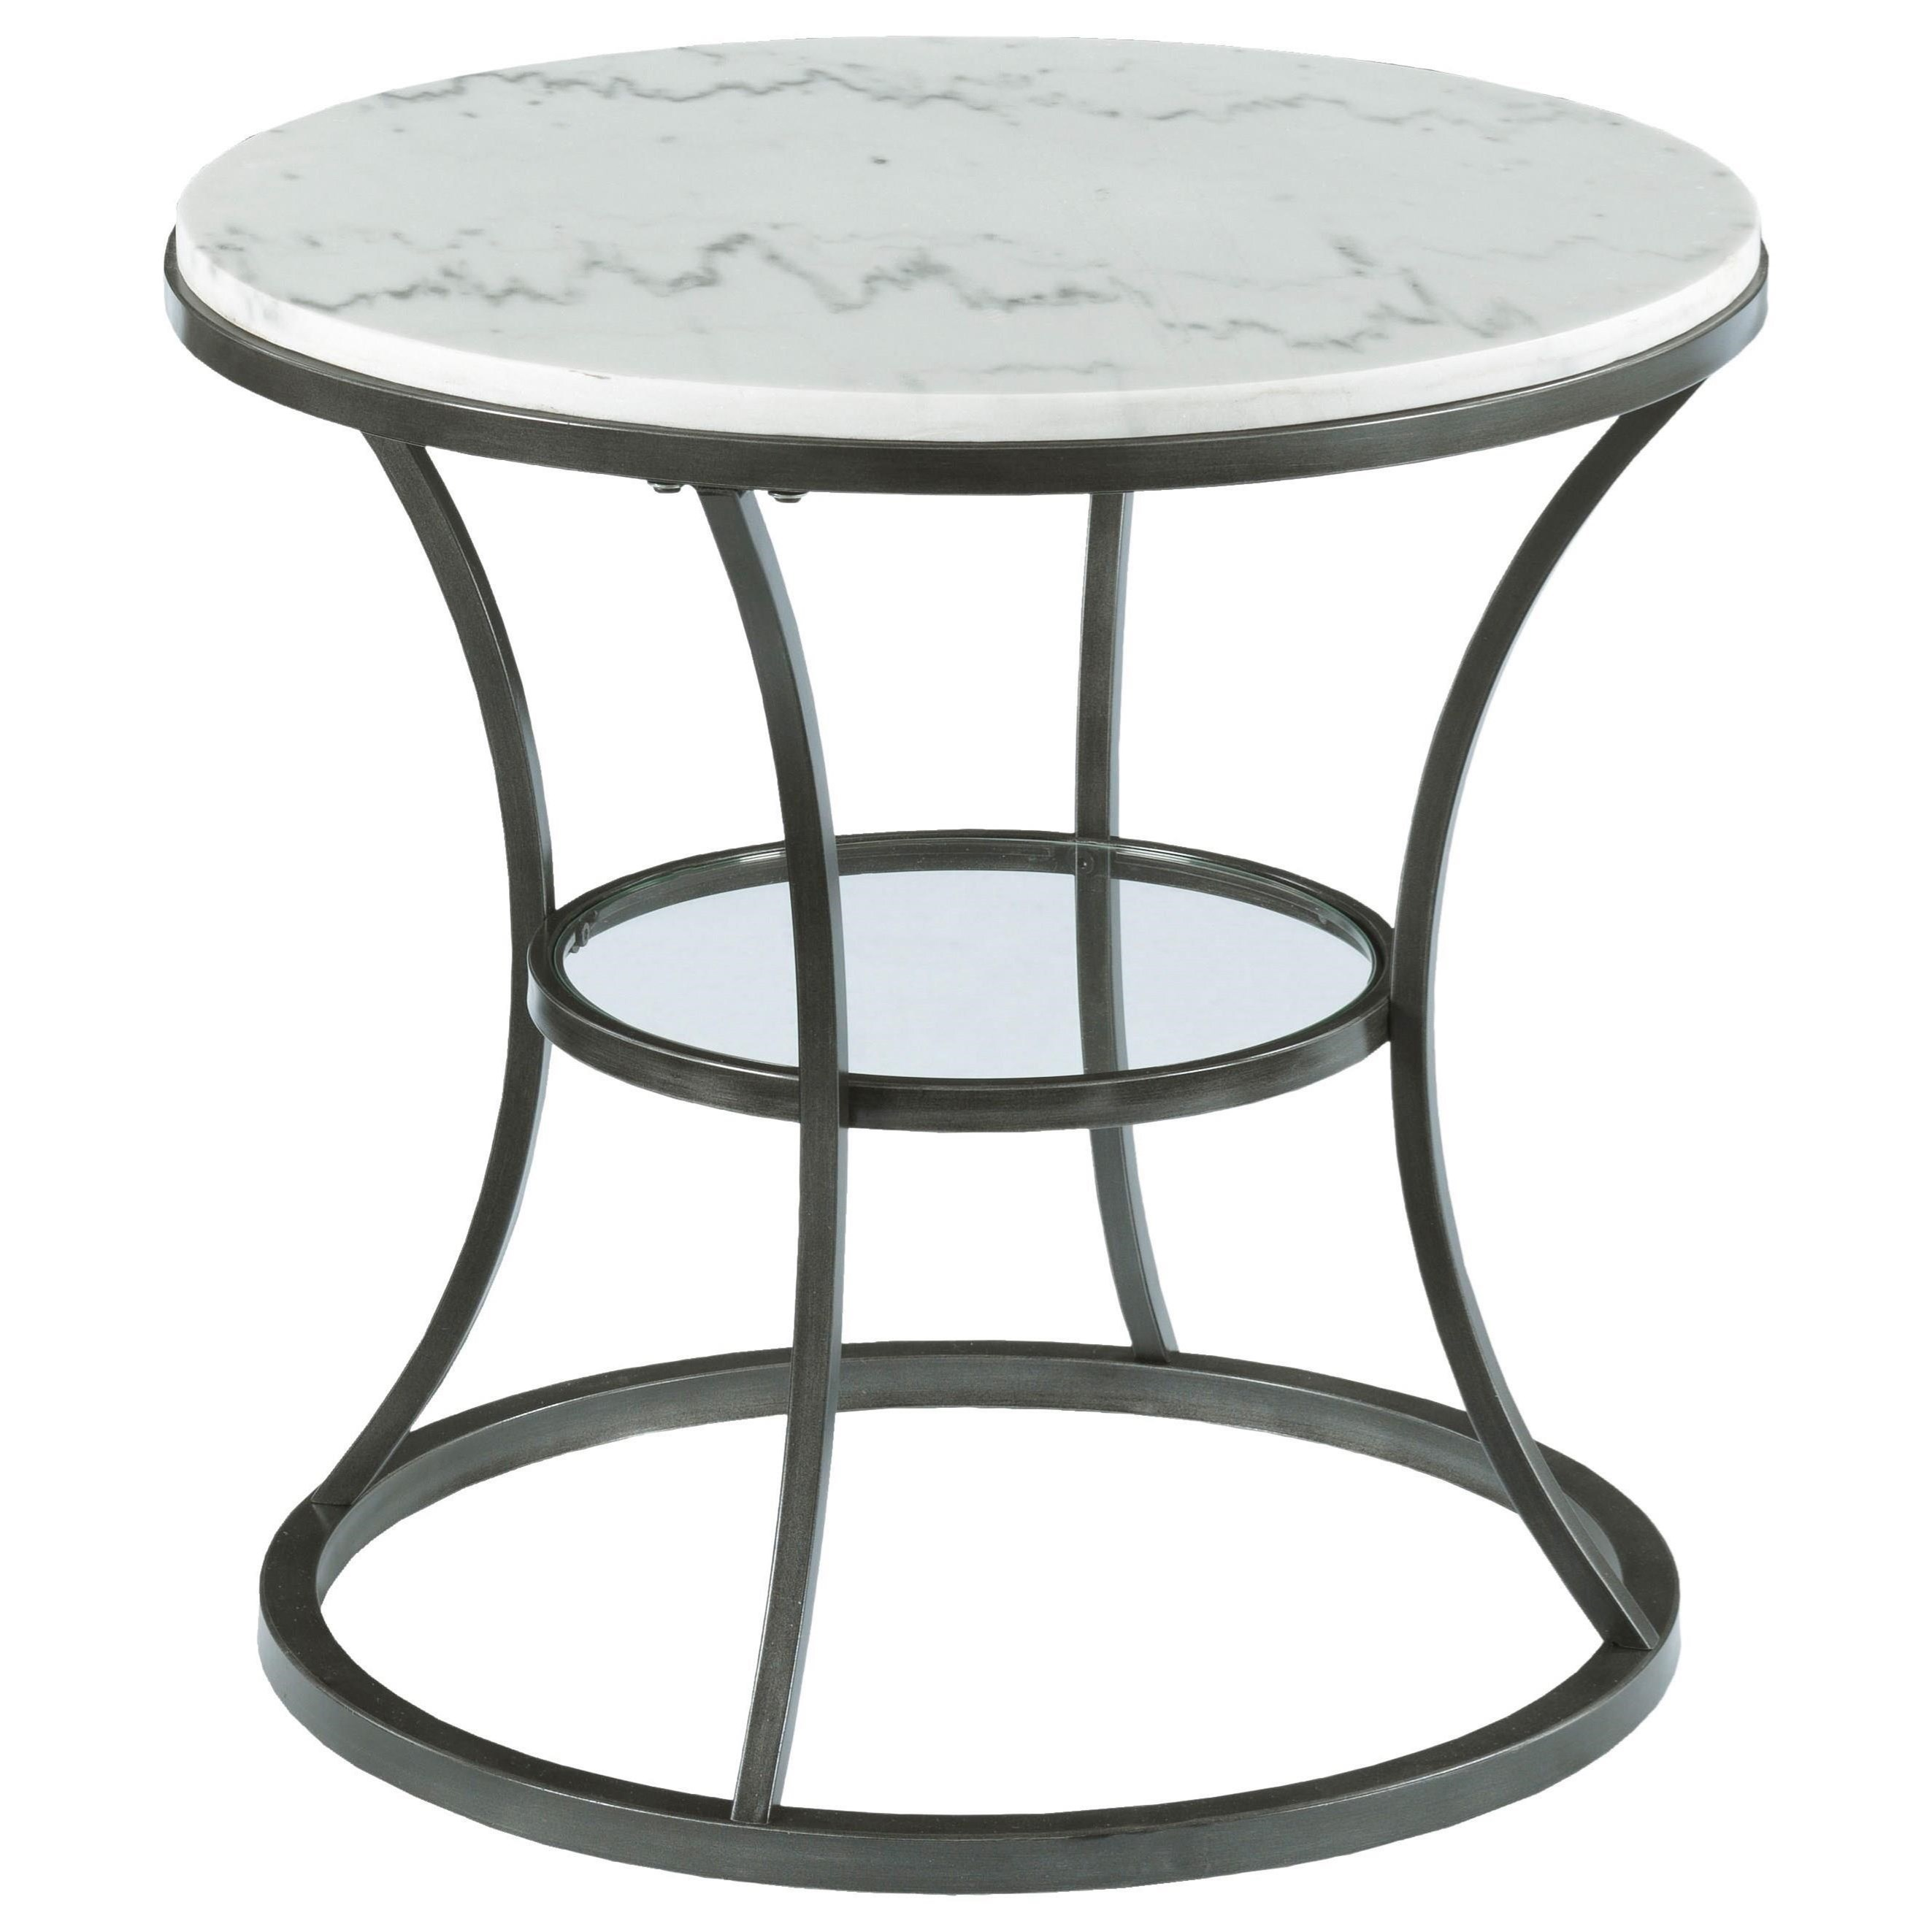 Impact Marble Top Round End Table by Hammary at Jordan's Home Furnishings